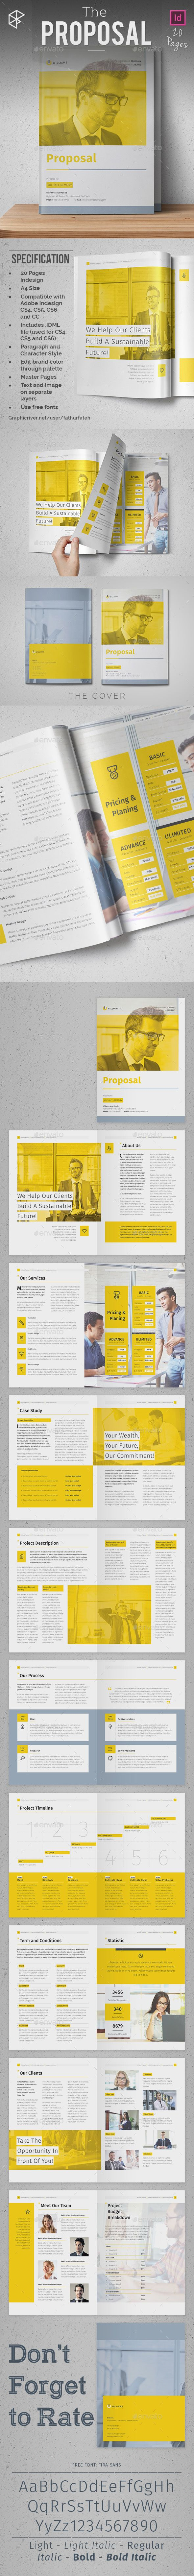 The Proposal Template InDesign INDD. Download here: http ...